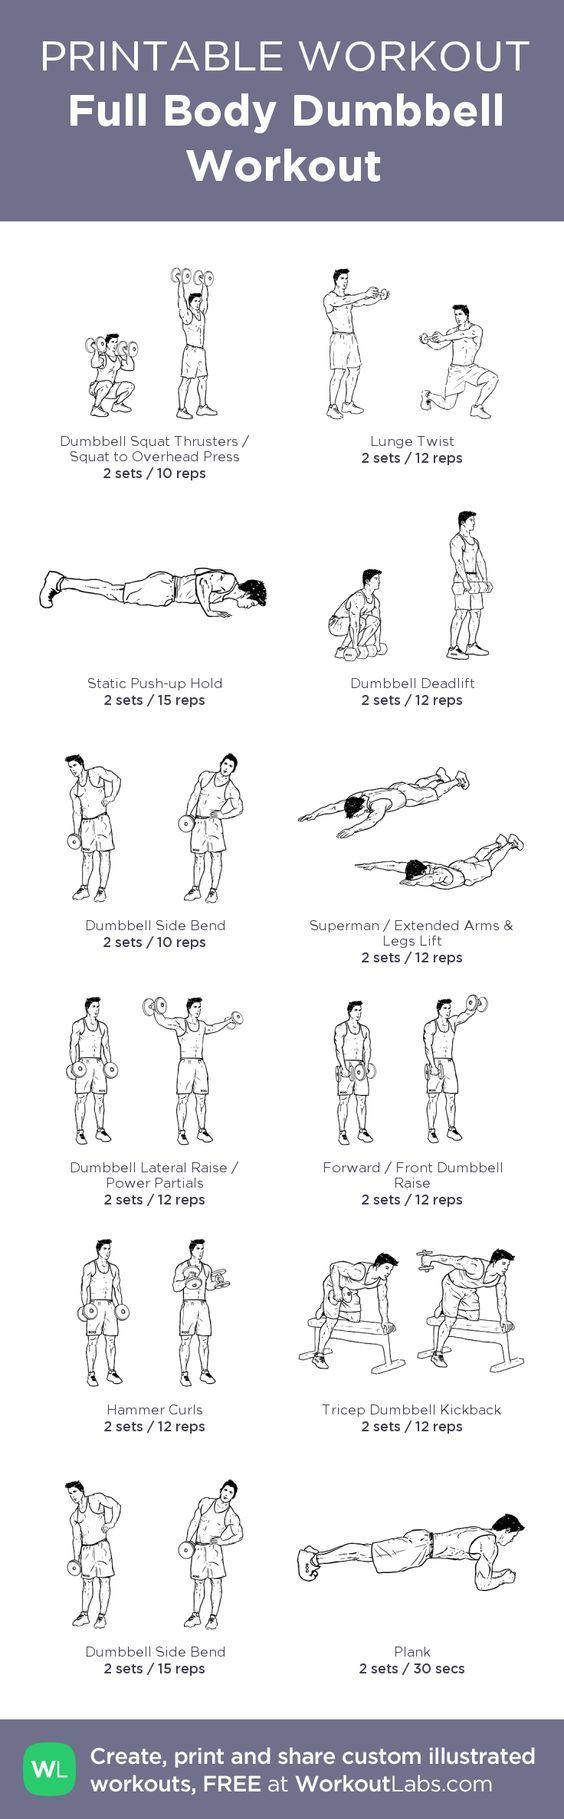 Full Body Dumbbell Workout My Visual Created At WorkoutLabs O Click Through To Customize And Download As A FREE PDF Customworkout